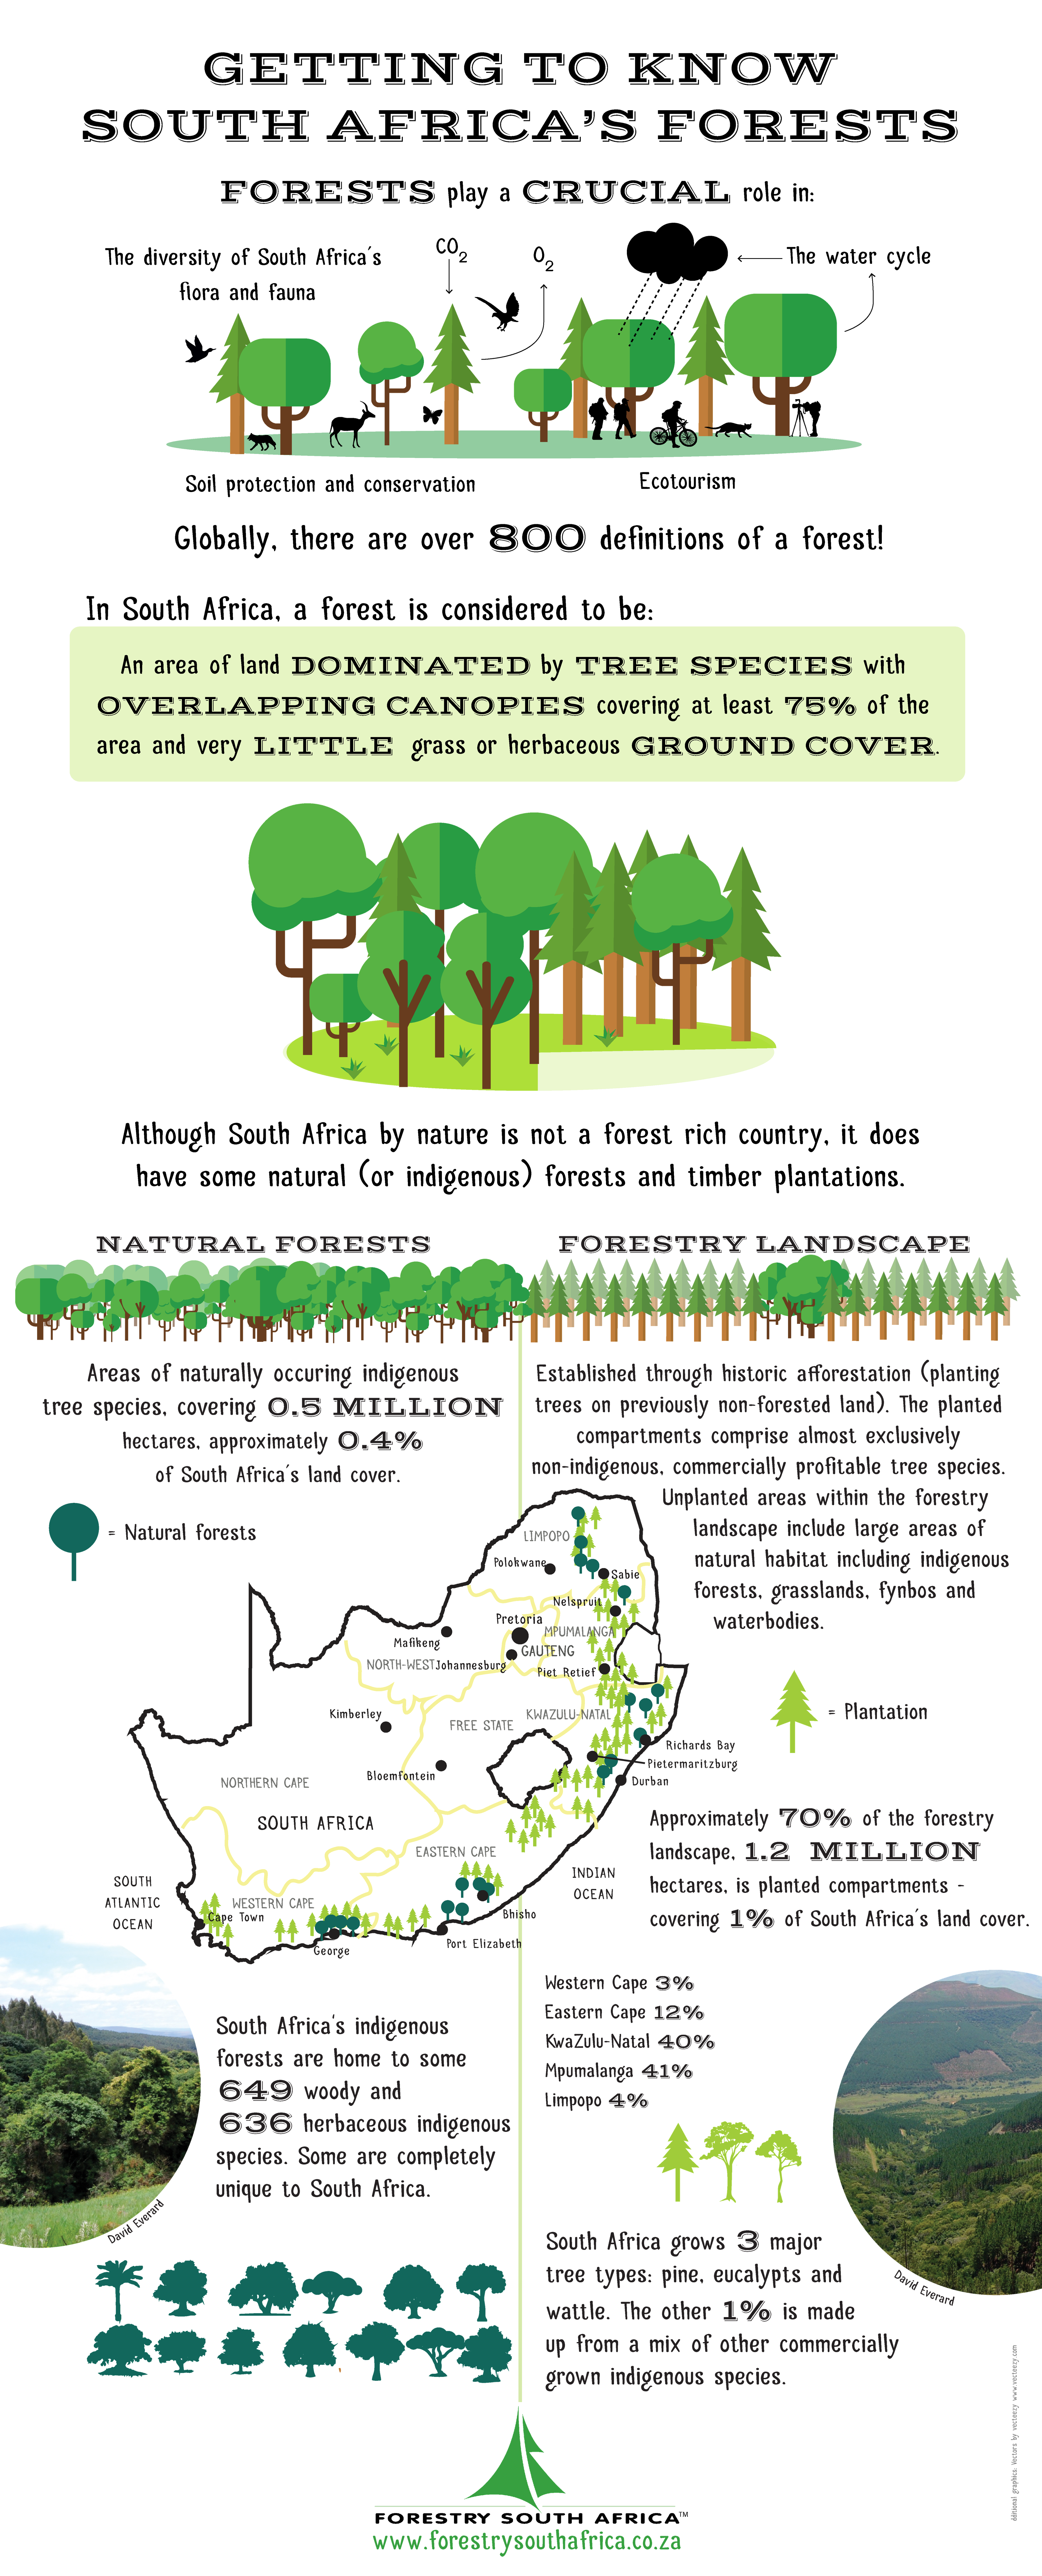 001 - Getting to know SA forests 2021 WEBSITE INFOGRAPHIC_WEB